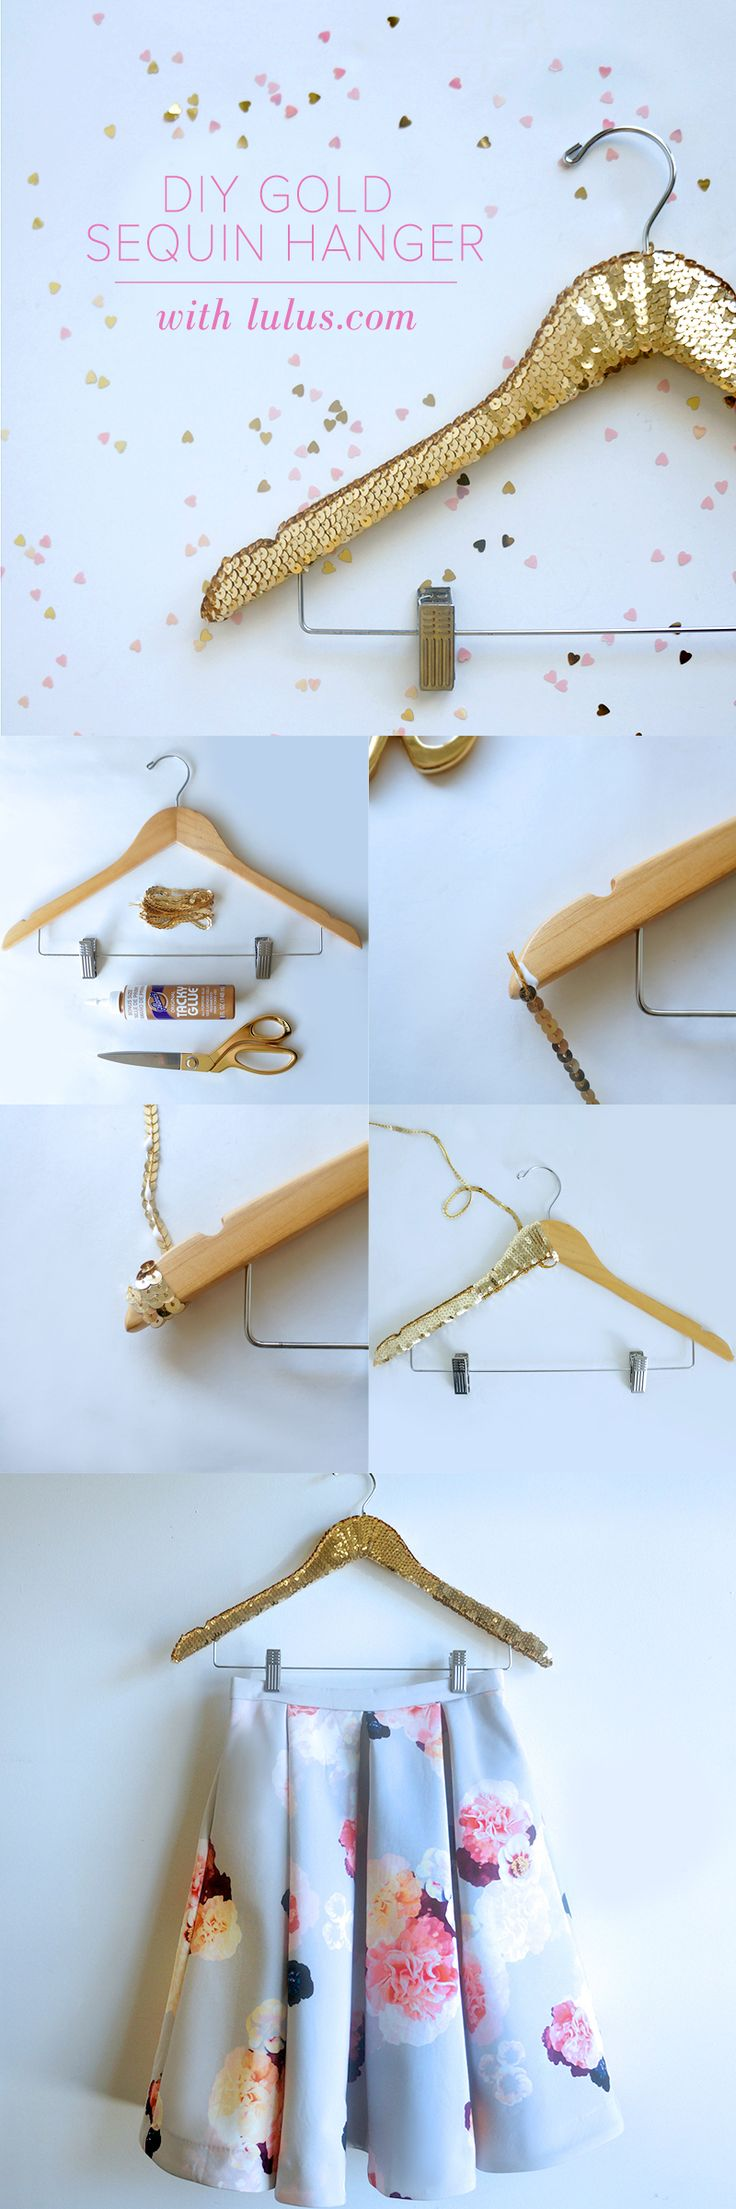 Take your closet to the next level with this DIY Gold Sequin Hanger. Make your clothes hangers sparkle!